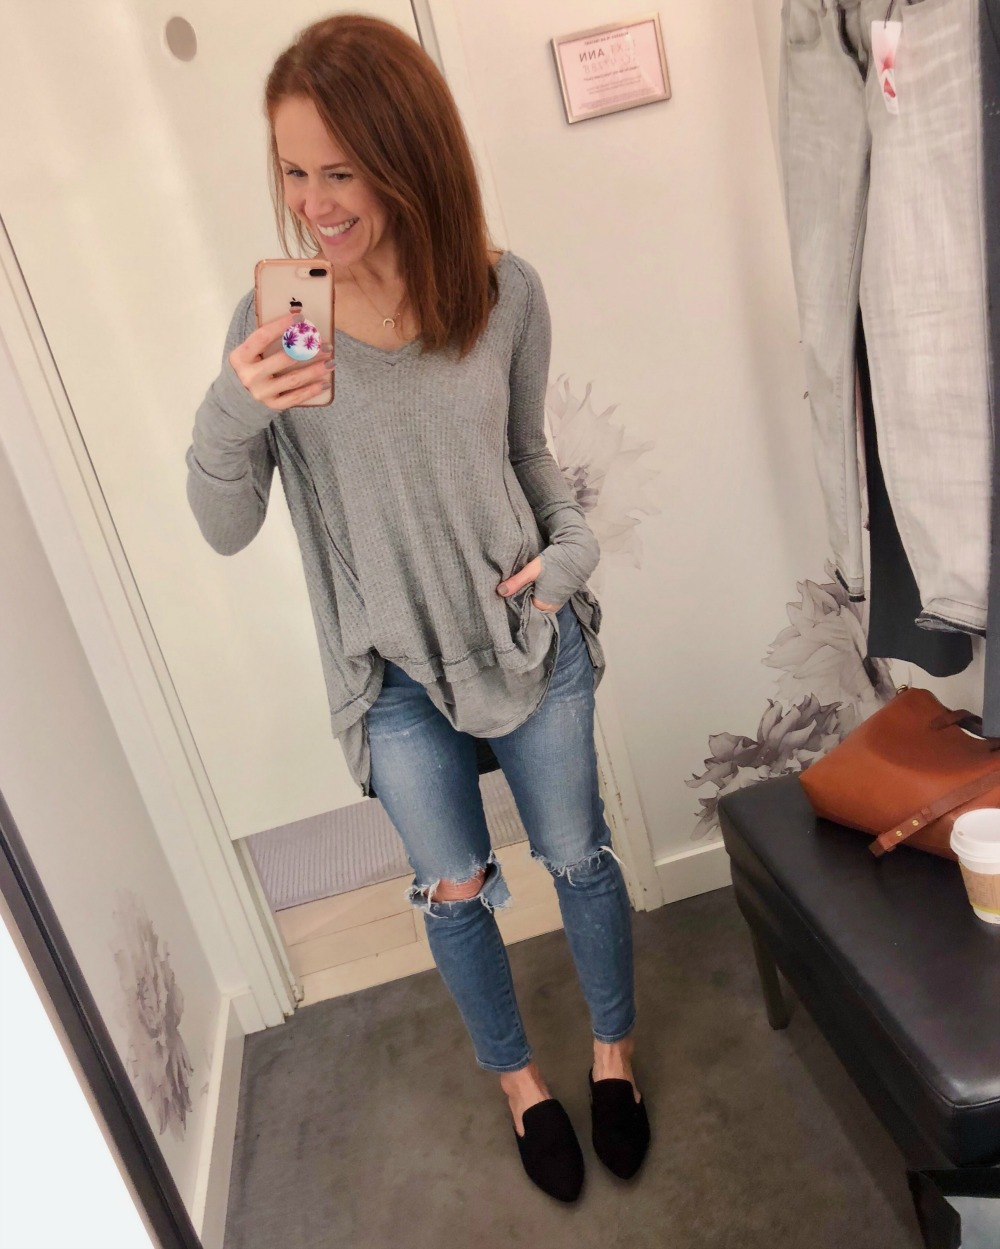 Easy casual look in Free People laguna thermal, Citizens of Humanity denim and Target slides - January 2018 Current Favorites by popular Florida lifestyle blogger The Modern Savvy